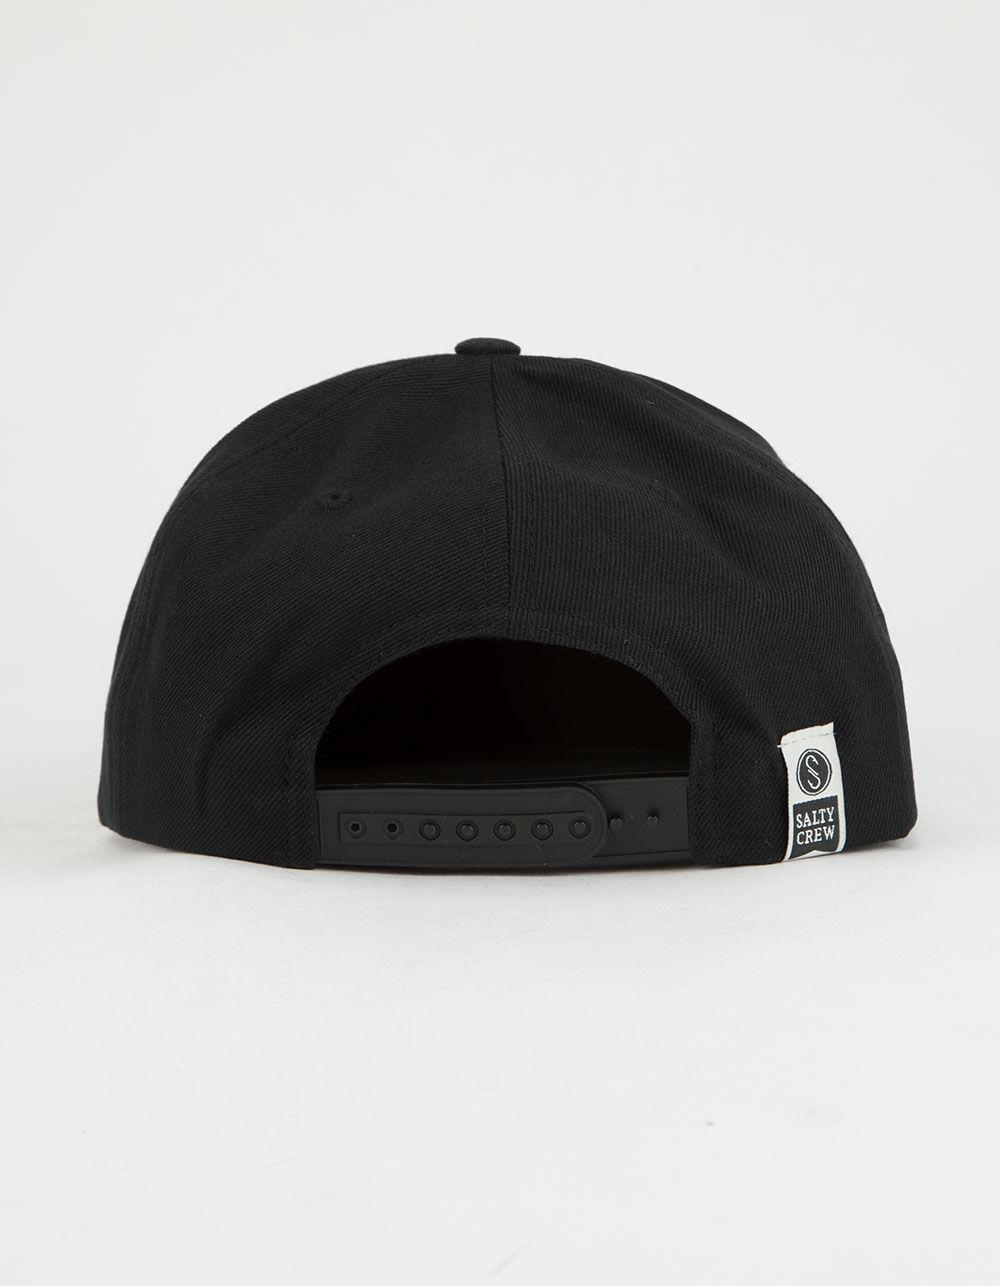 a1009cb42c6 ... official store lyst salty crew eight legs mens snapback hat in black  for men 6a6e5 40be3